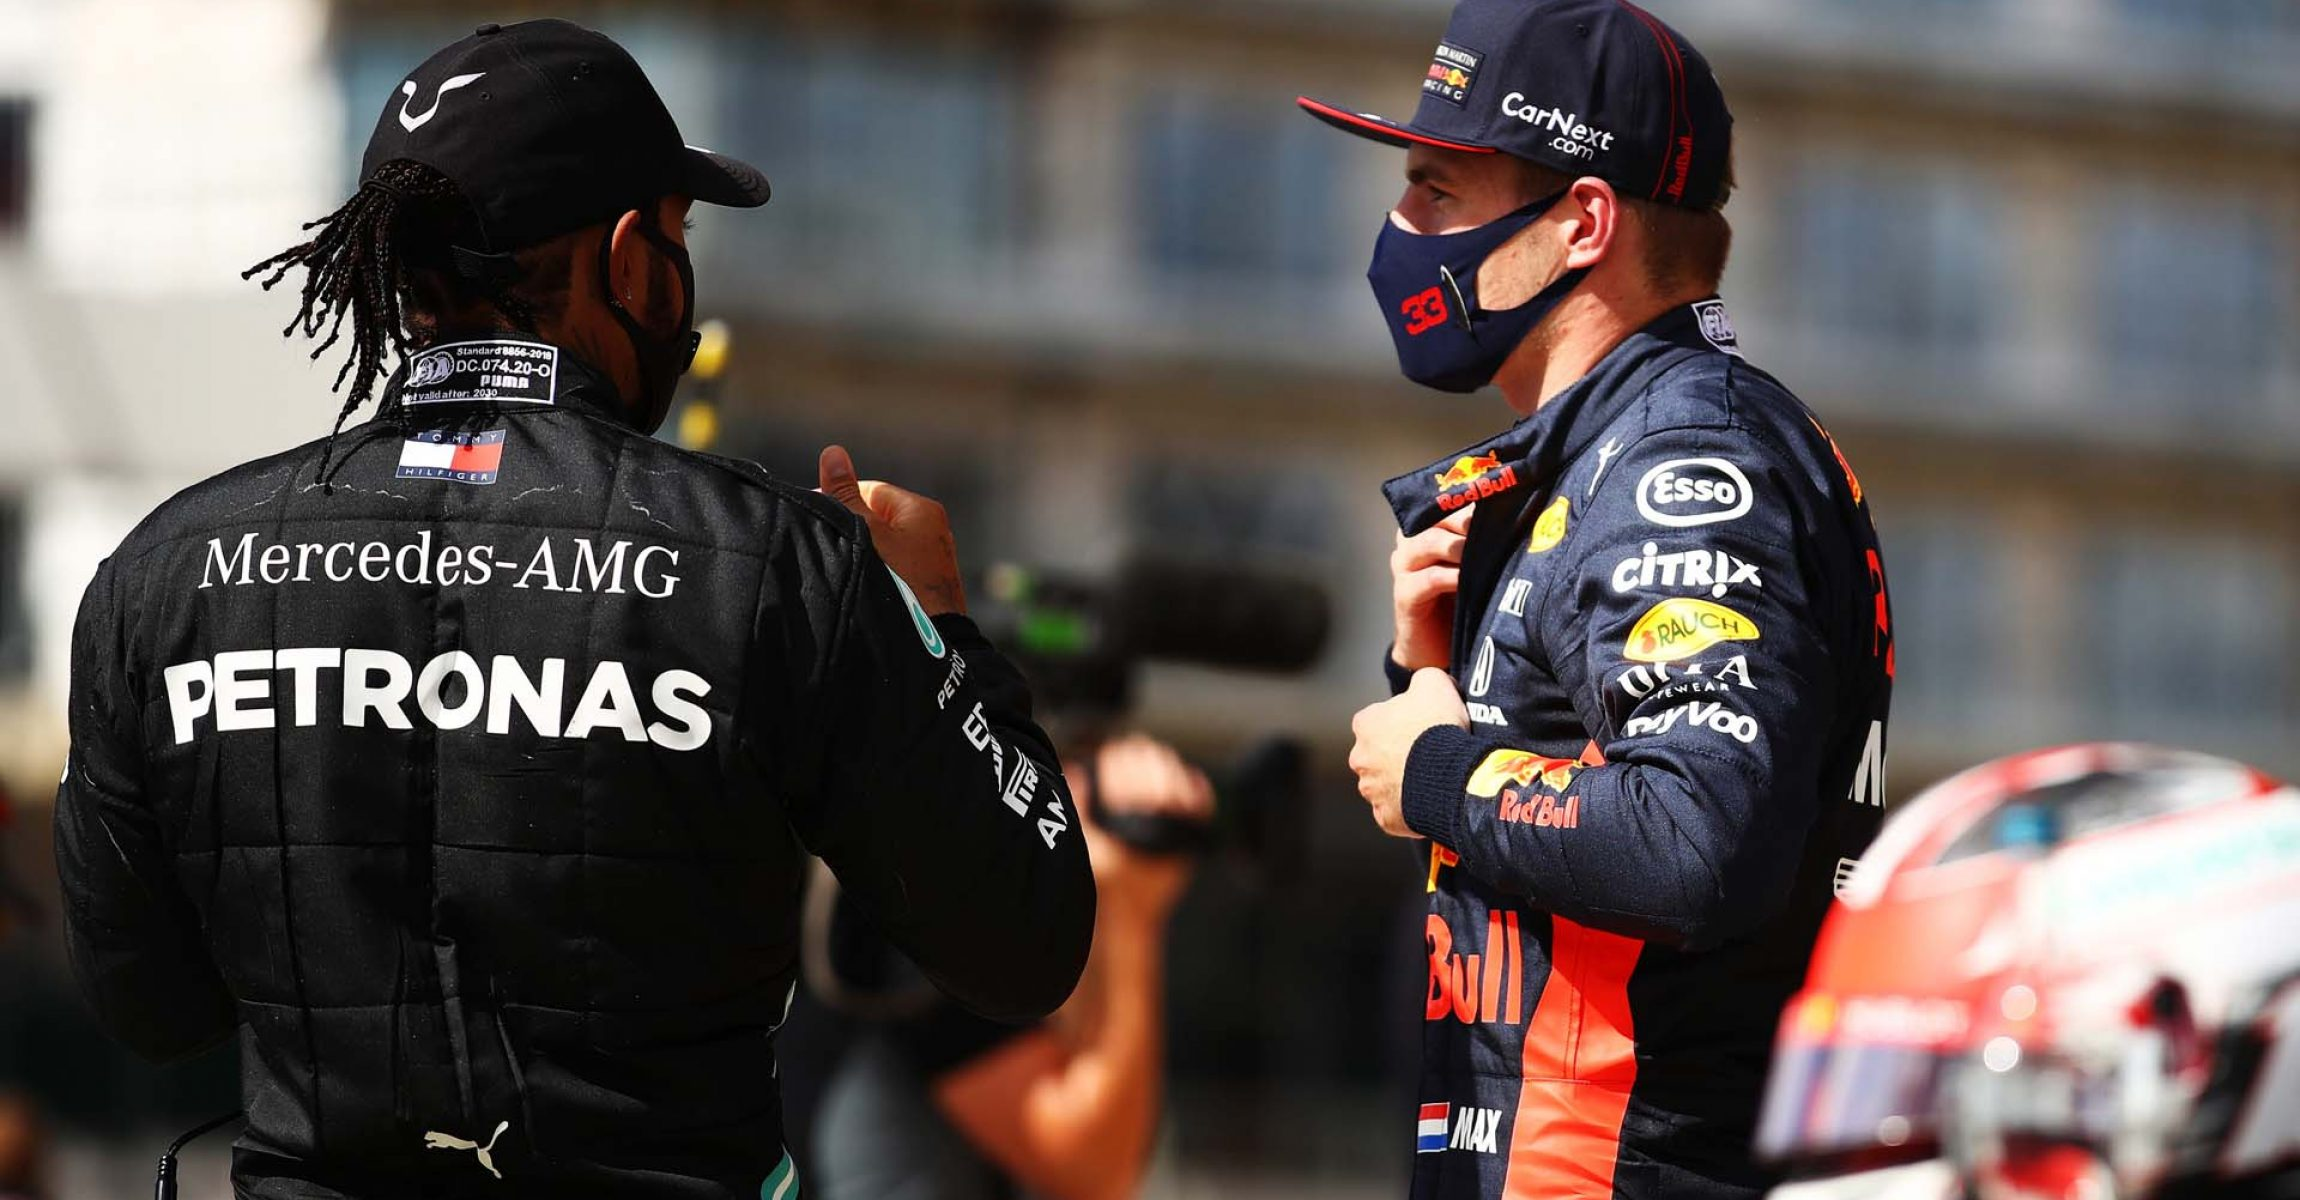 NORTHAMPTON, ENGLAND - AUGUST 02: Race winner Lewis Hamilton of Great Britain and Mercedes GP speaks with second placed Max Verstappen of Netherlands and Red Bull Racing in parc ferme during the F1 Grand Prix of Great Britain at Silverstone on August 02, 2020 in Northampton, England. (Photo by Bryn Lennon/Getty Images) // Getty Images / Red Bull Content Pool  // AP-24TQN1U852111 // Usage for editorial use only //